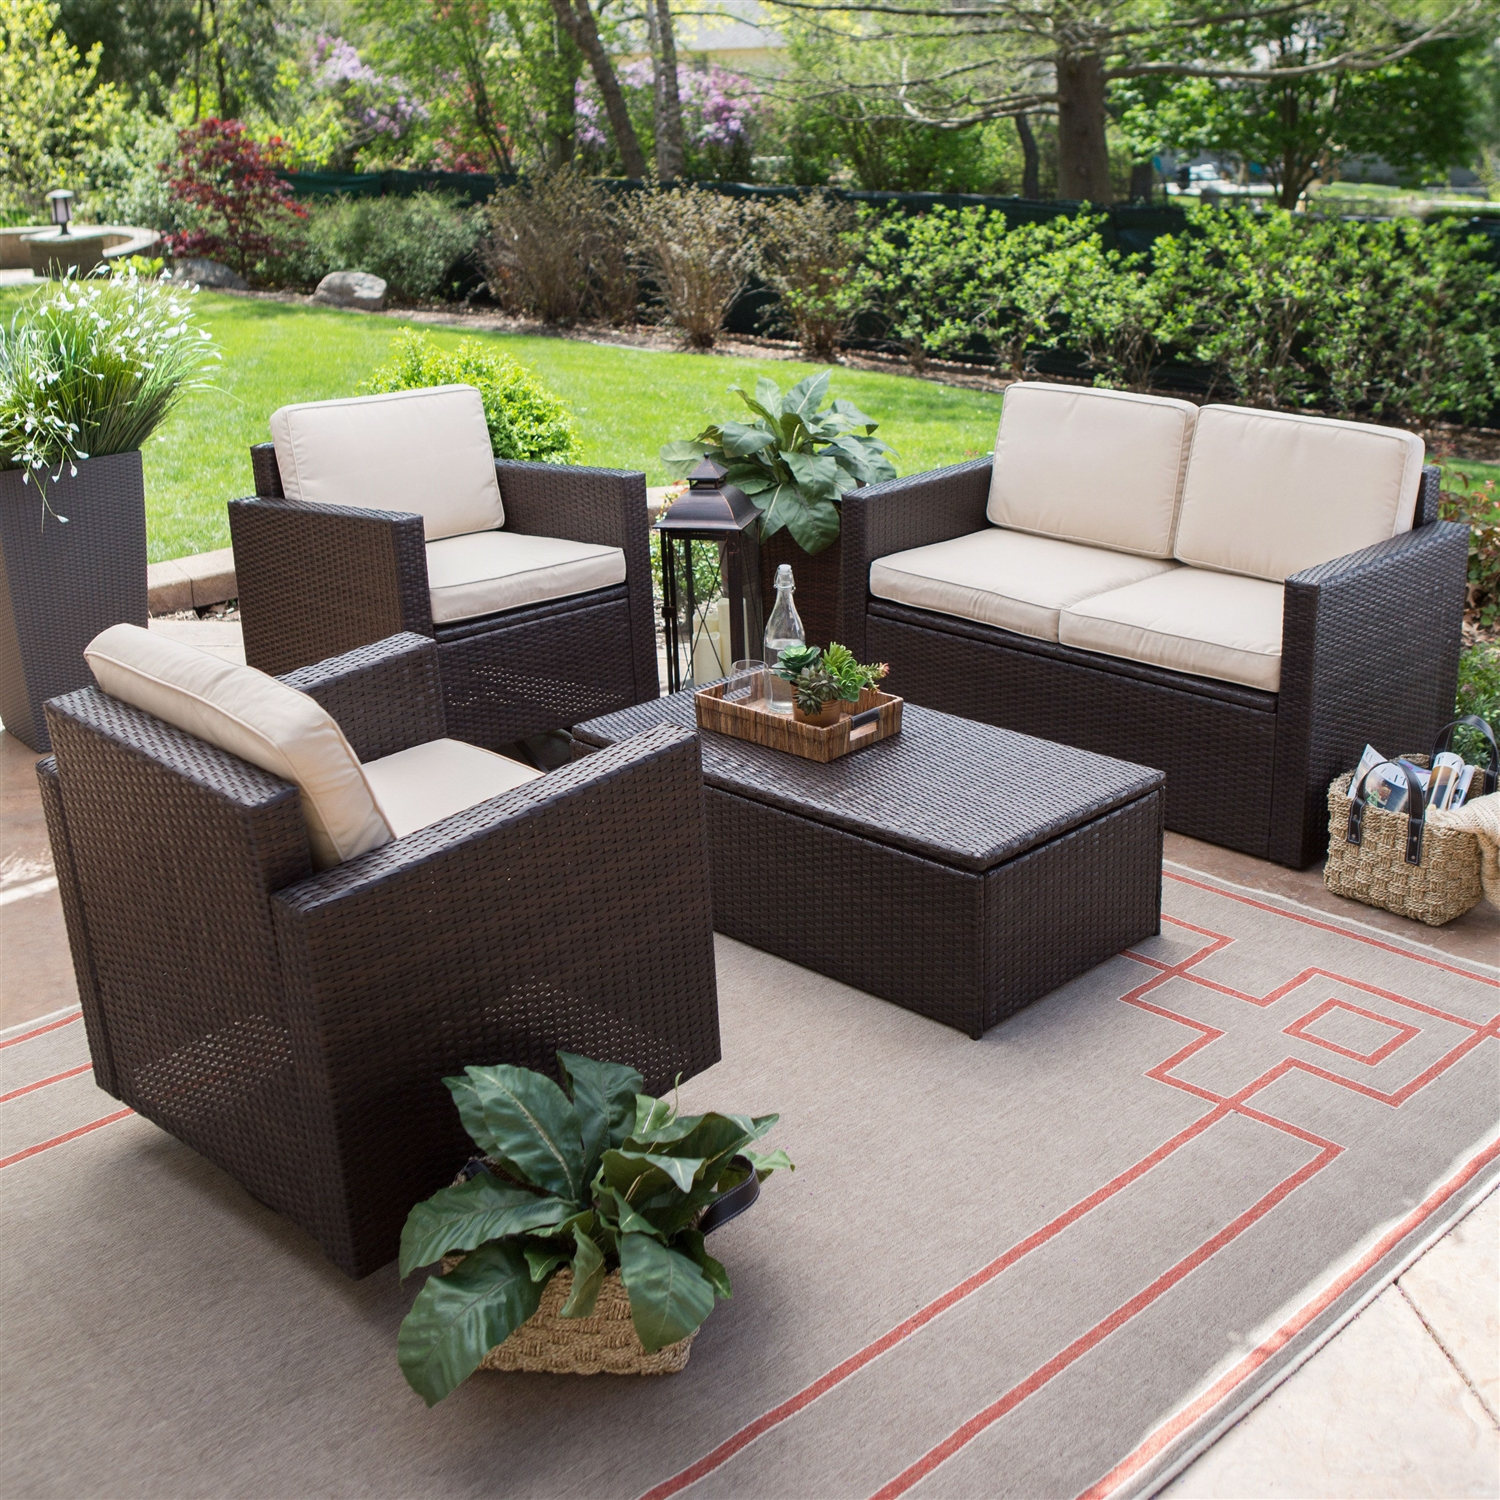 Astonishing Outdoor Brown Wicker Resin 4 Piece Patio Furniture Dinning Set Alphanode Cool Chair Designs And Ideas Alphanodeonline